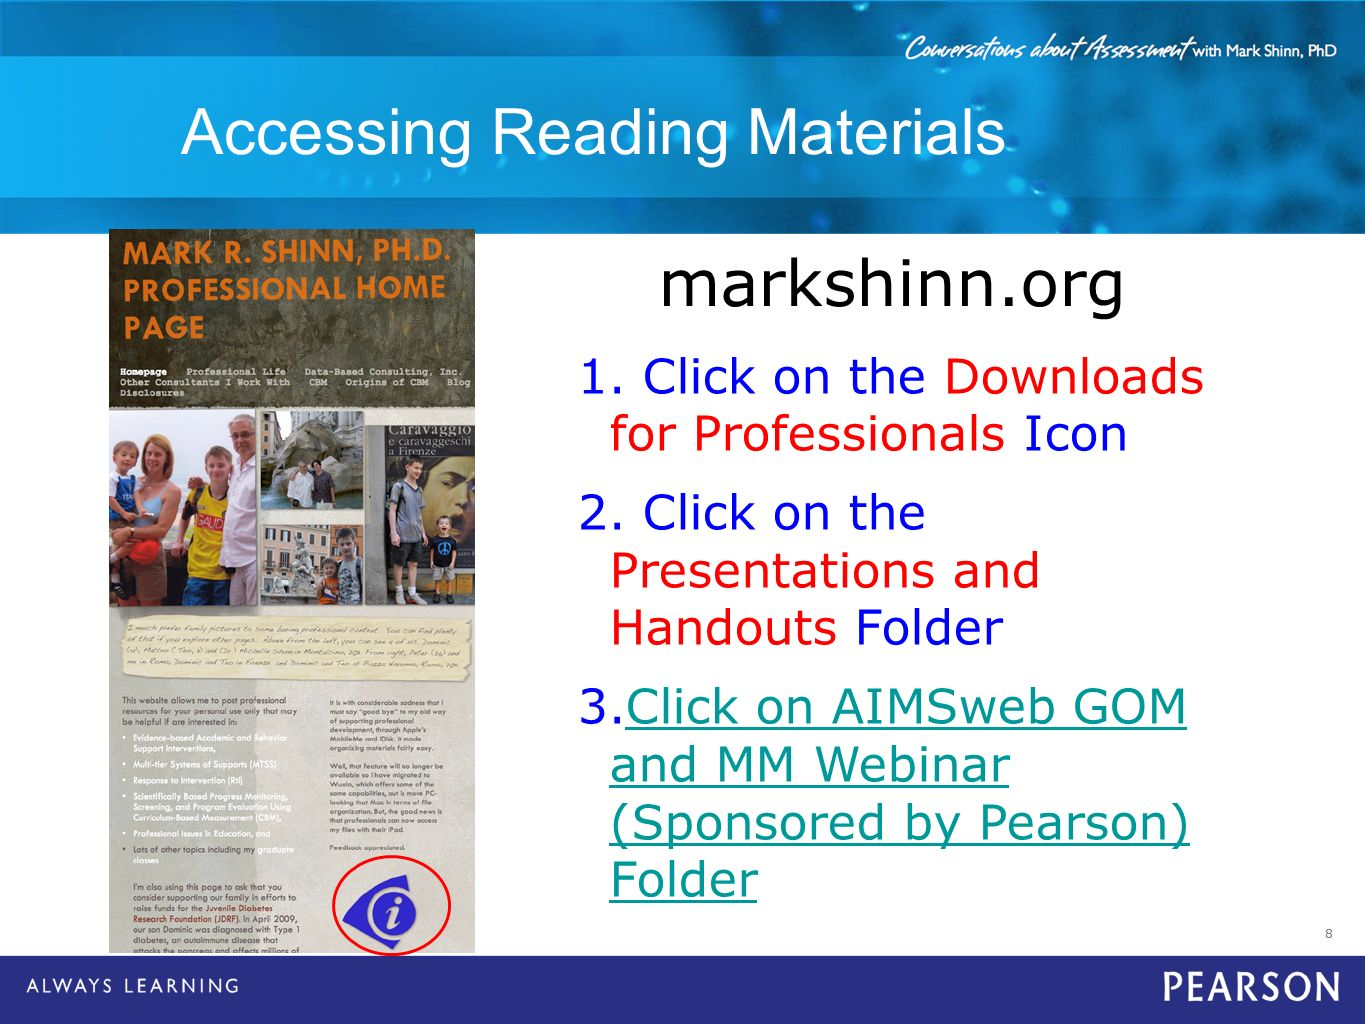 8 Accessing Reading Materials markshinn.org 1. Click on the Downloads for Professionals Icon 2. Click on the Presentations and Handouts Folder 3.Click